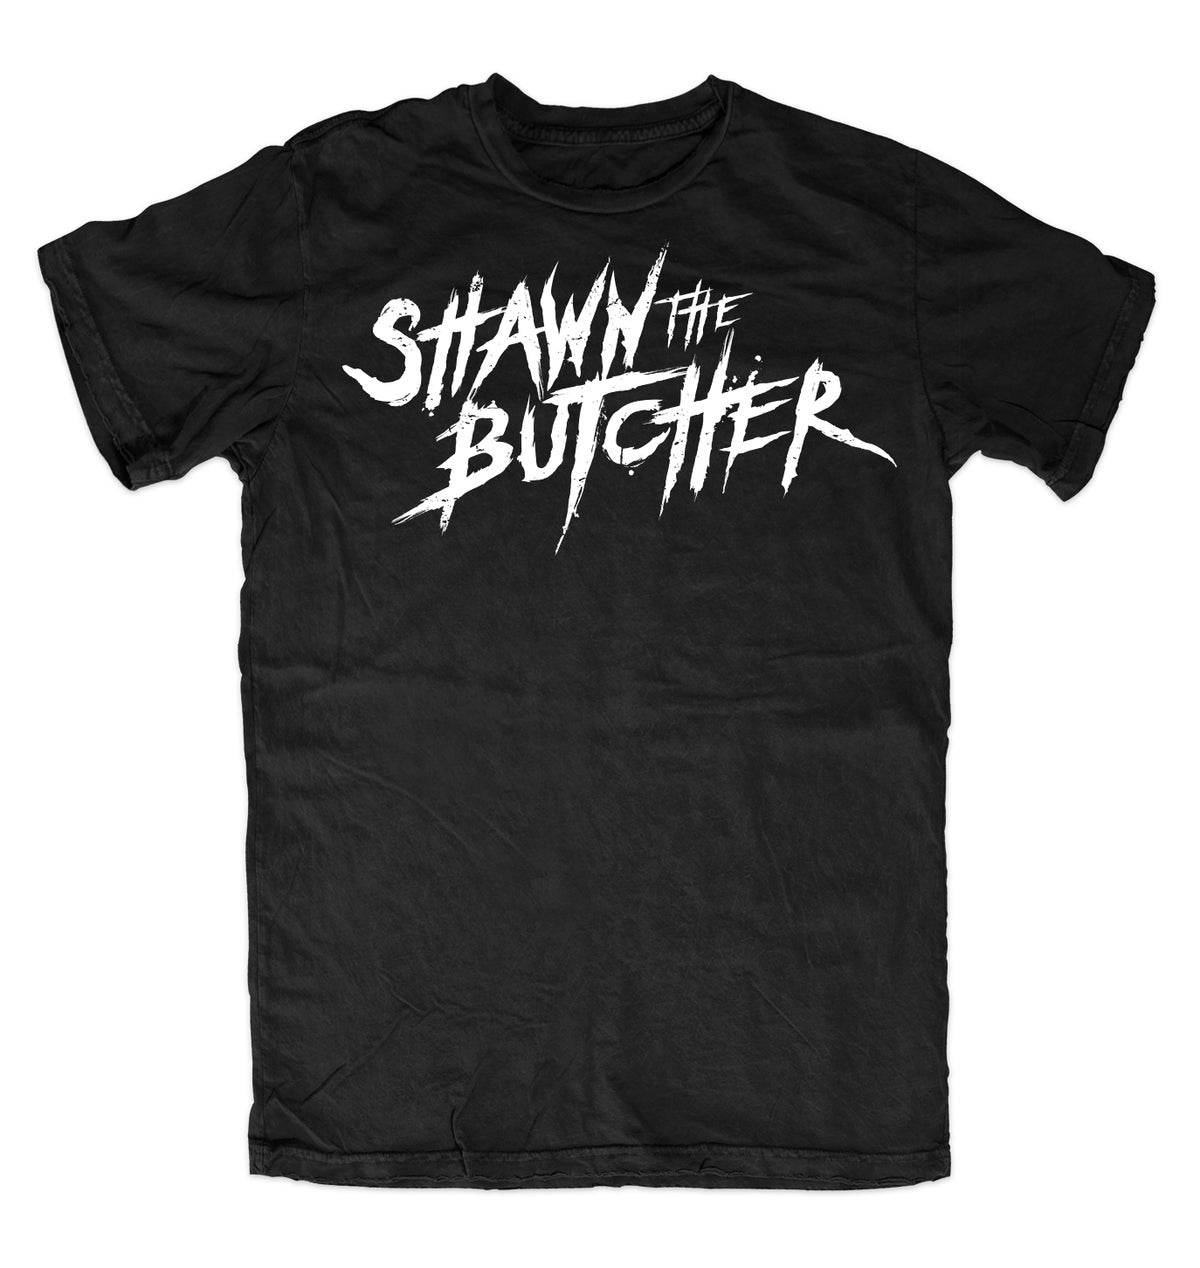 Image of Official Shawn The Butcher Shirt